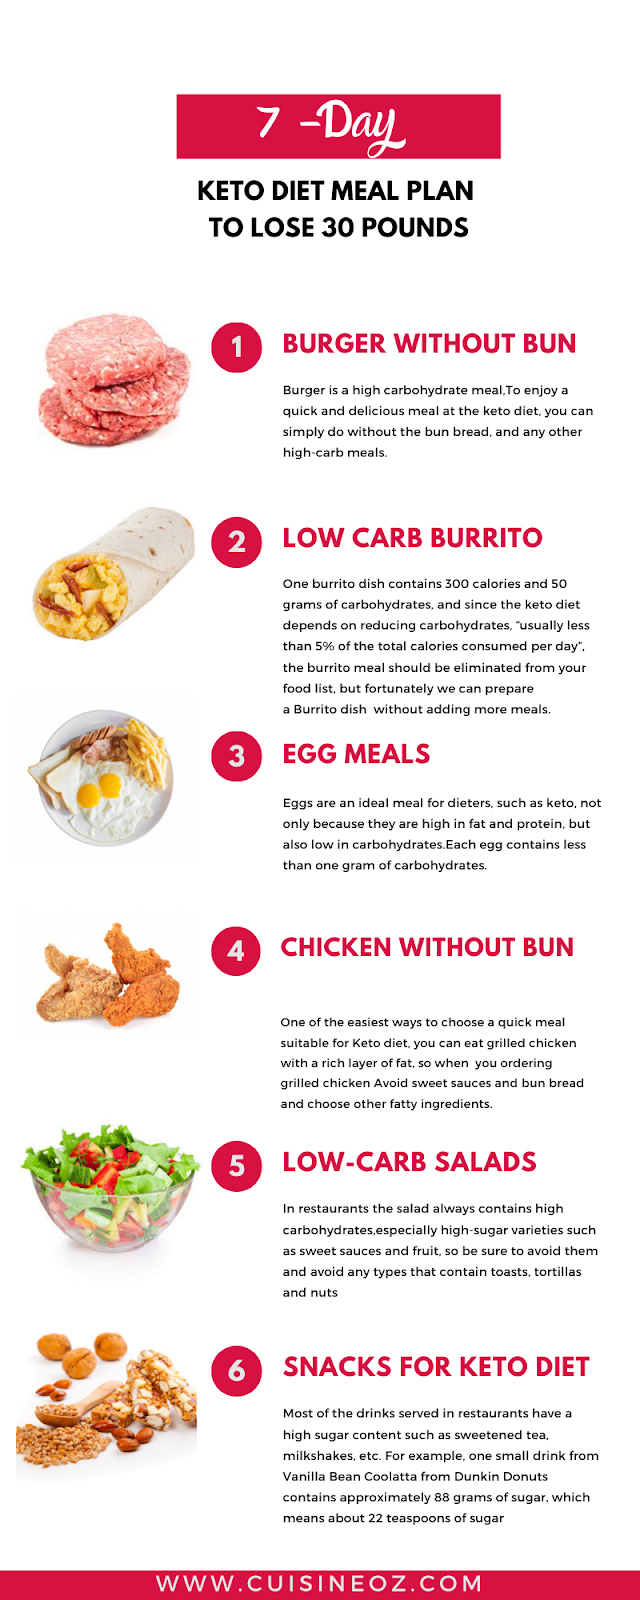 "keto diet for beginners or Ketogenic Diet, or as you may have heard of it ""The Keto Diet"". Committing to a keto diet meal plan can help solve no end of problems and help beginners weight loss #keto #ketorecipes #recipes #ketodiet #diet #dietplan"